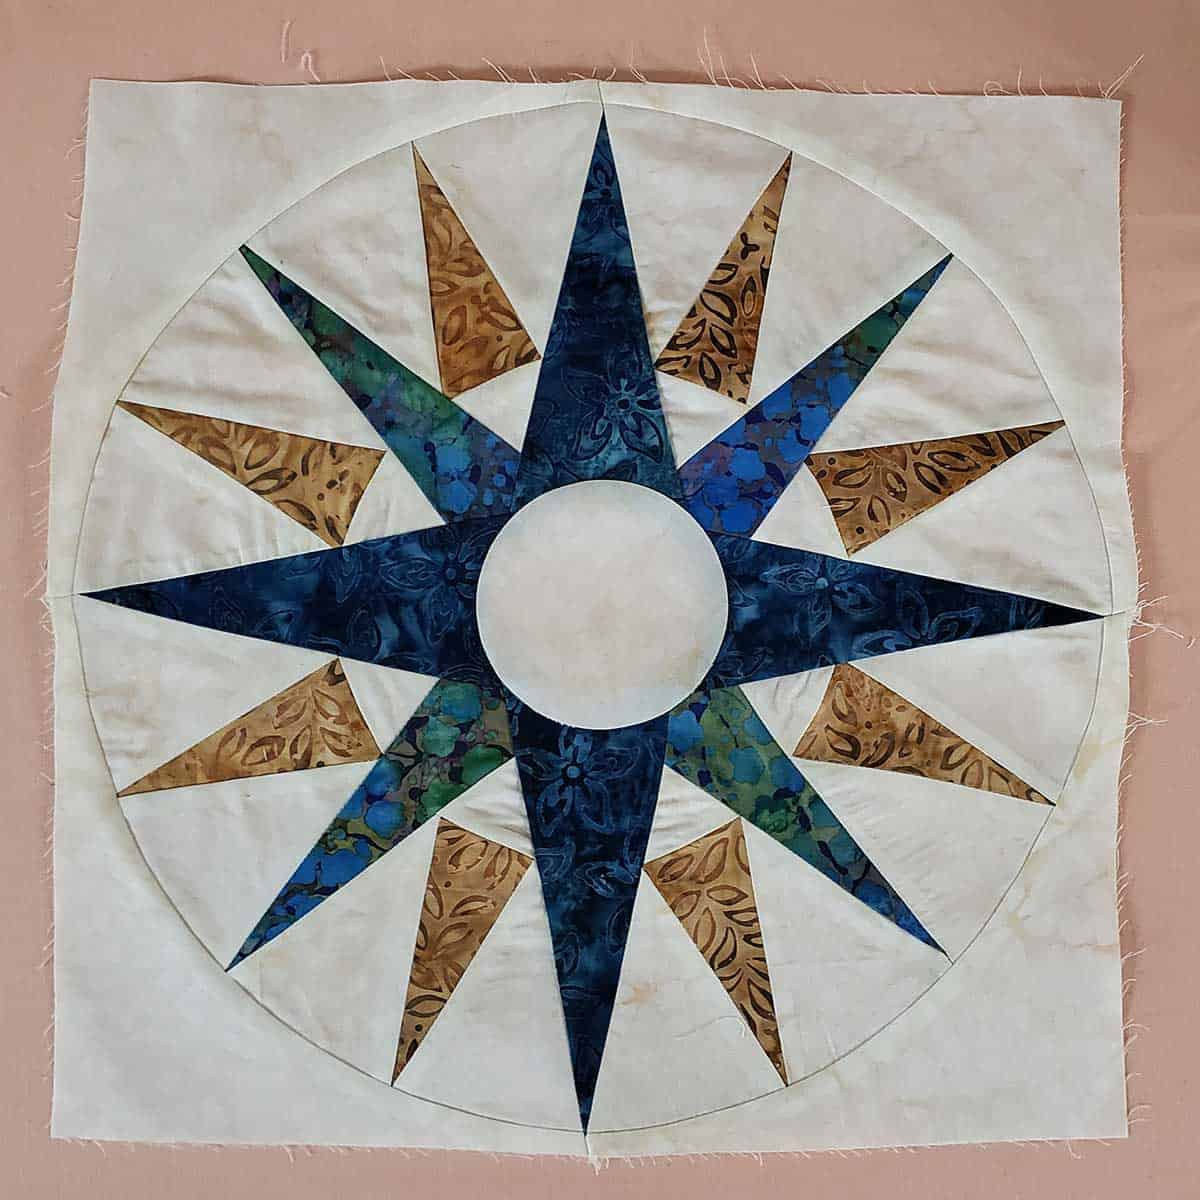 Completed piecing of the Mariner's Compass